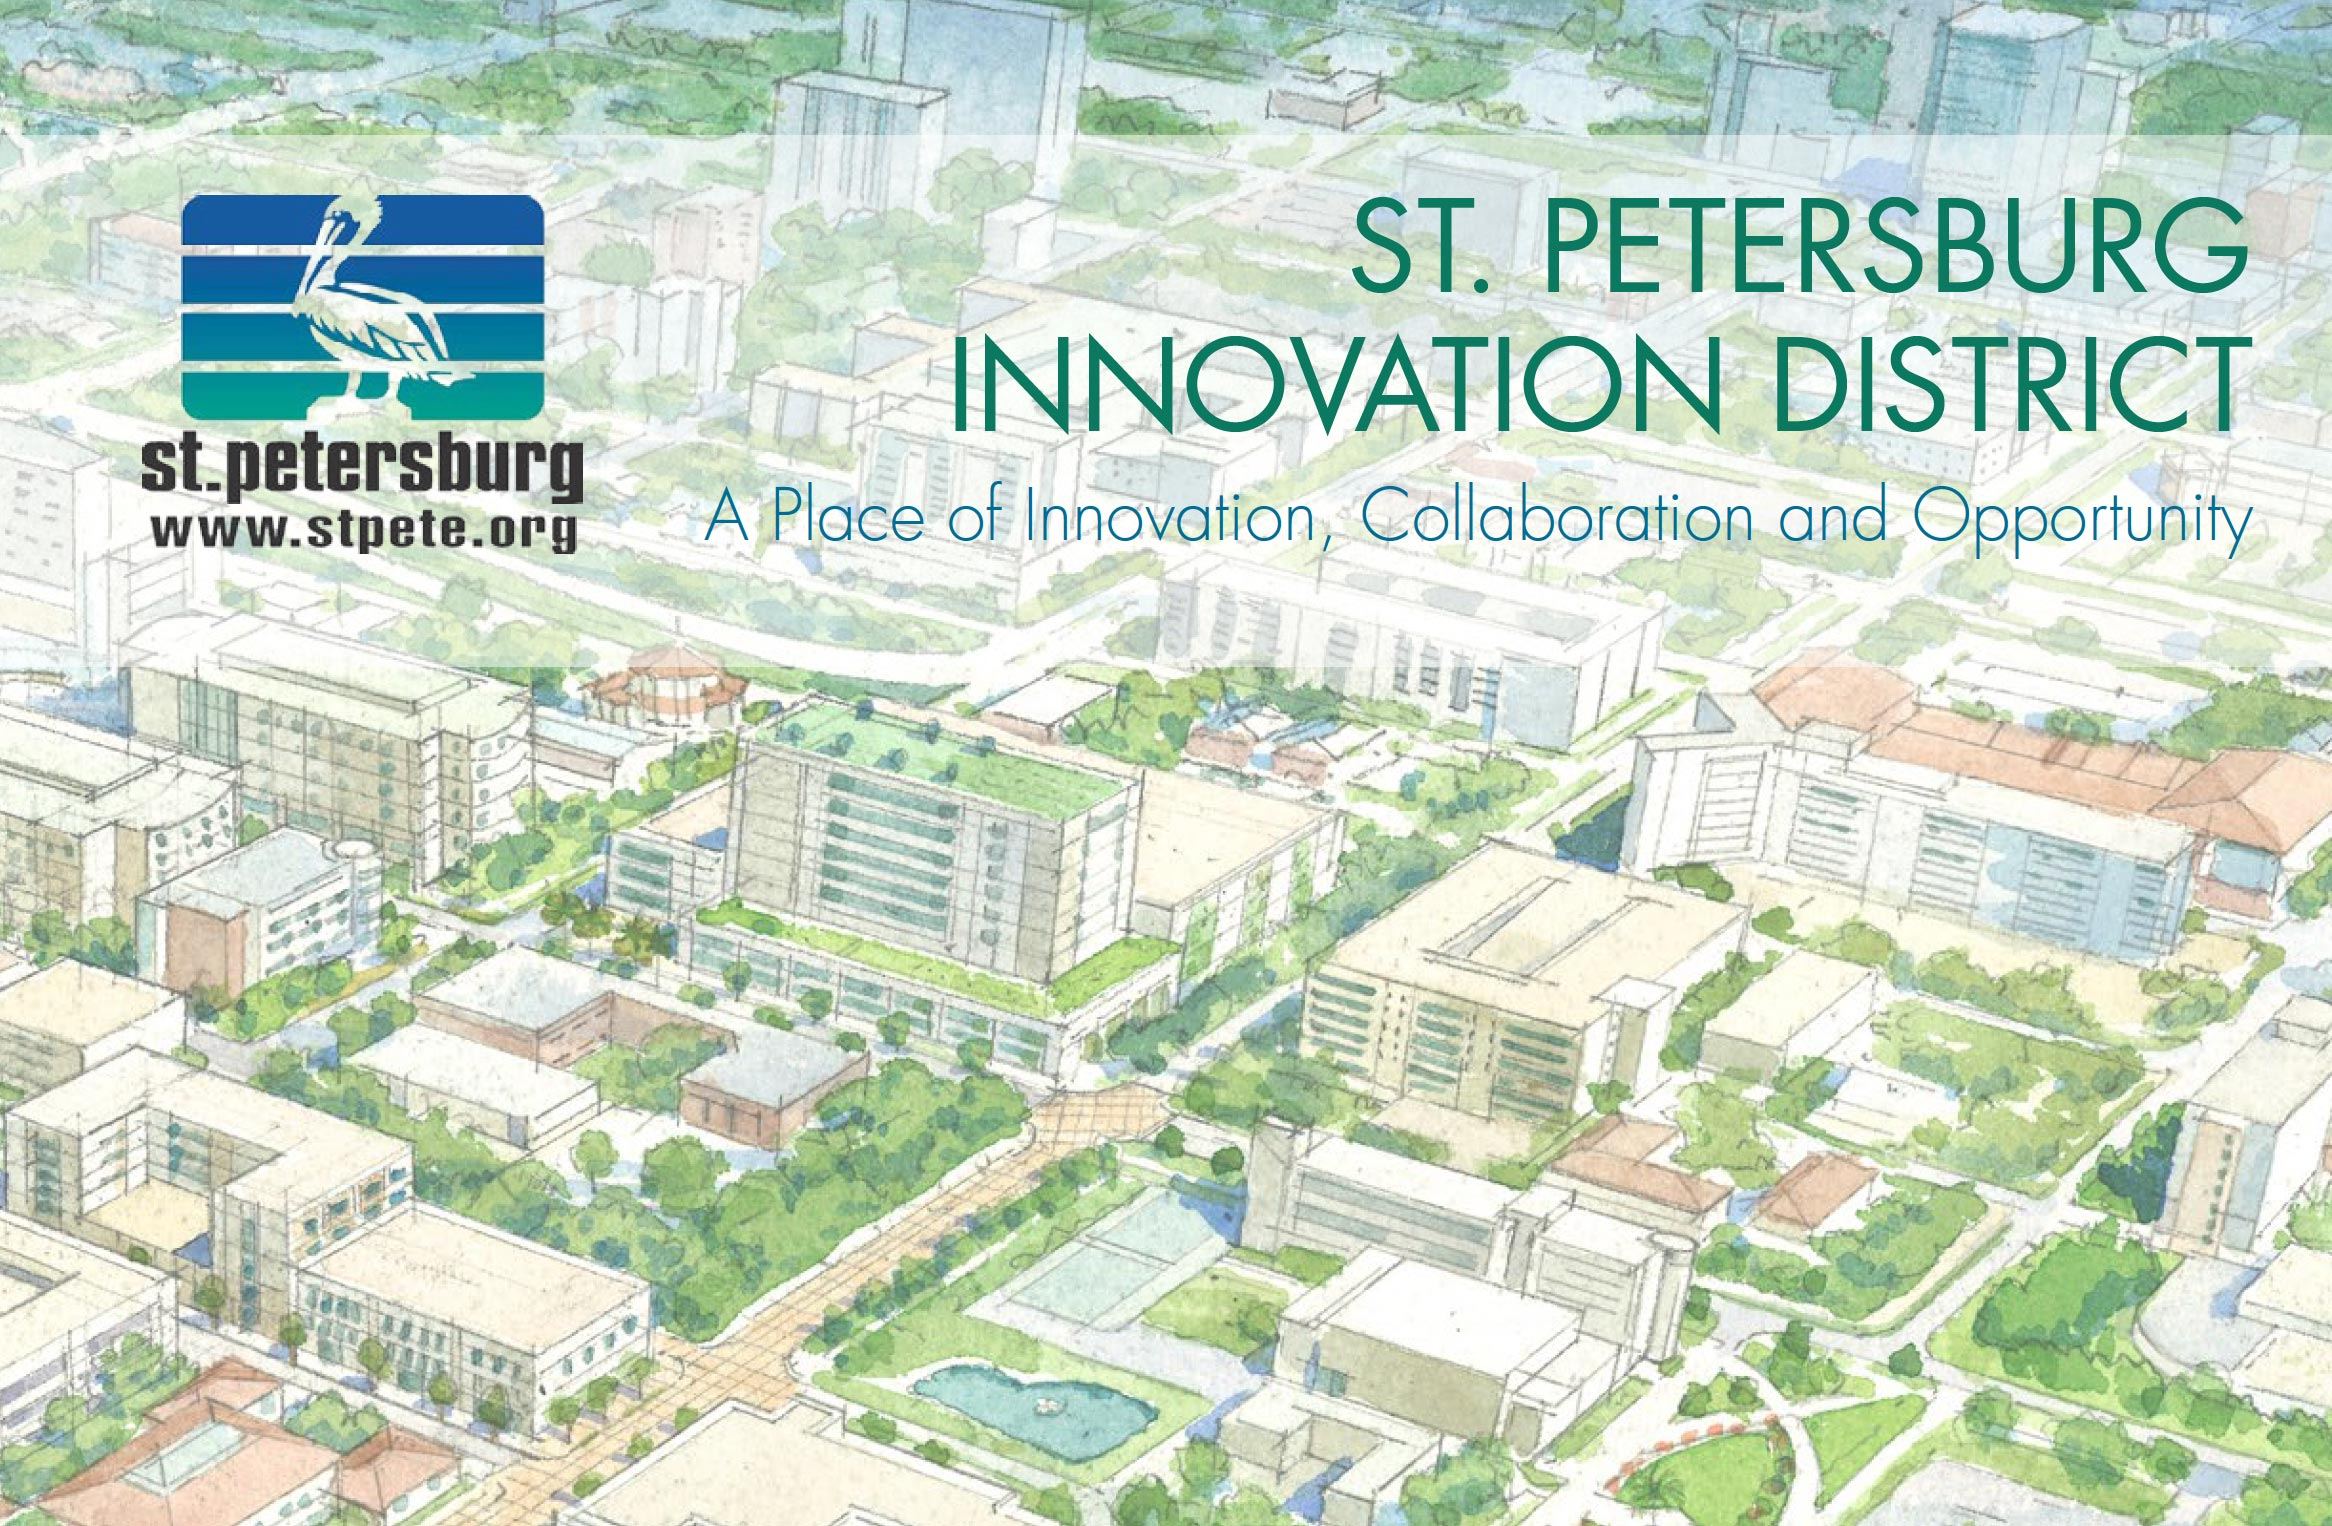 Cover art for the 2015 District Visioning Summary